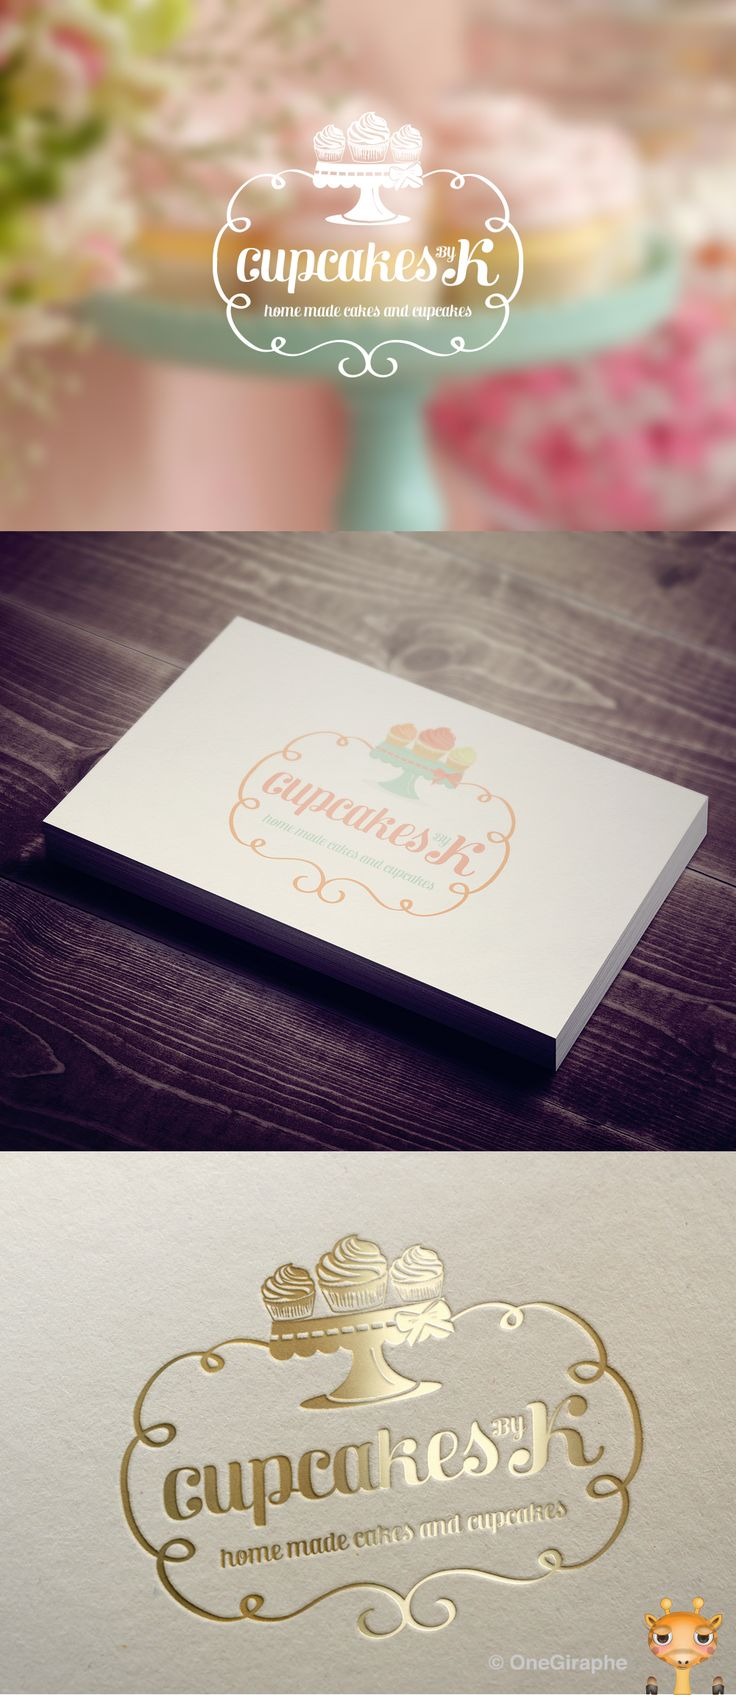 142 best images on pinterest business cards graphics and branding for cake cupcake bakery for sale logo color variations and reheart Choice Image